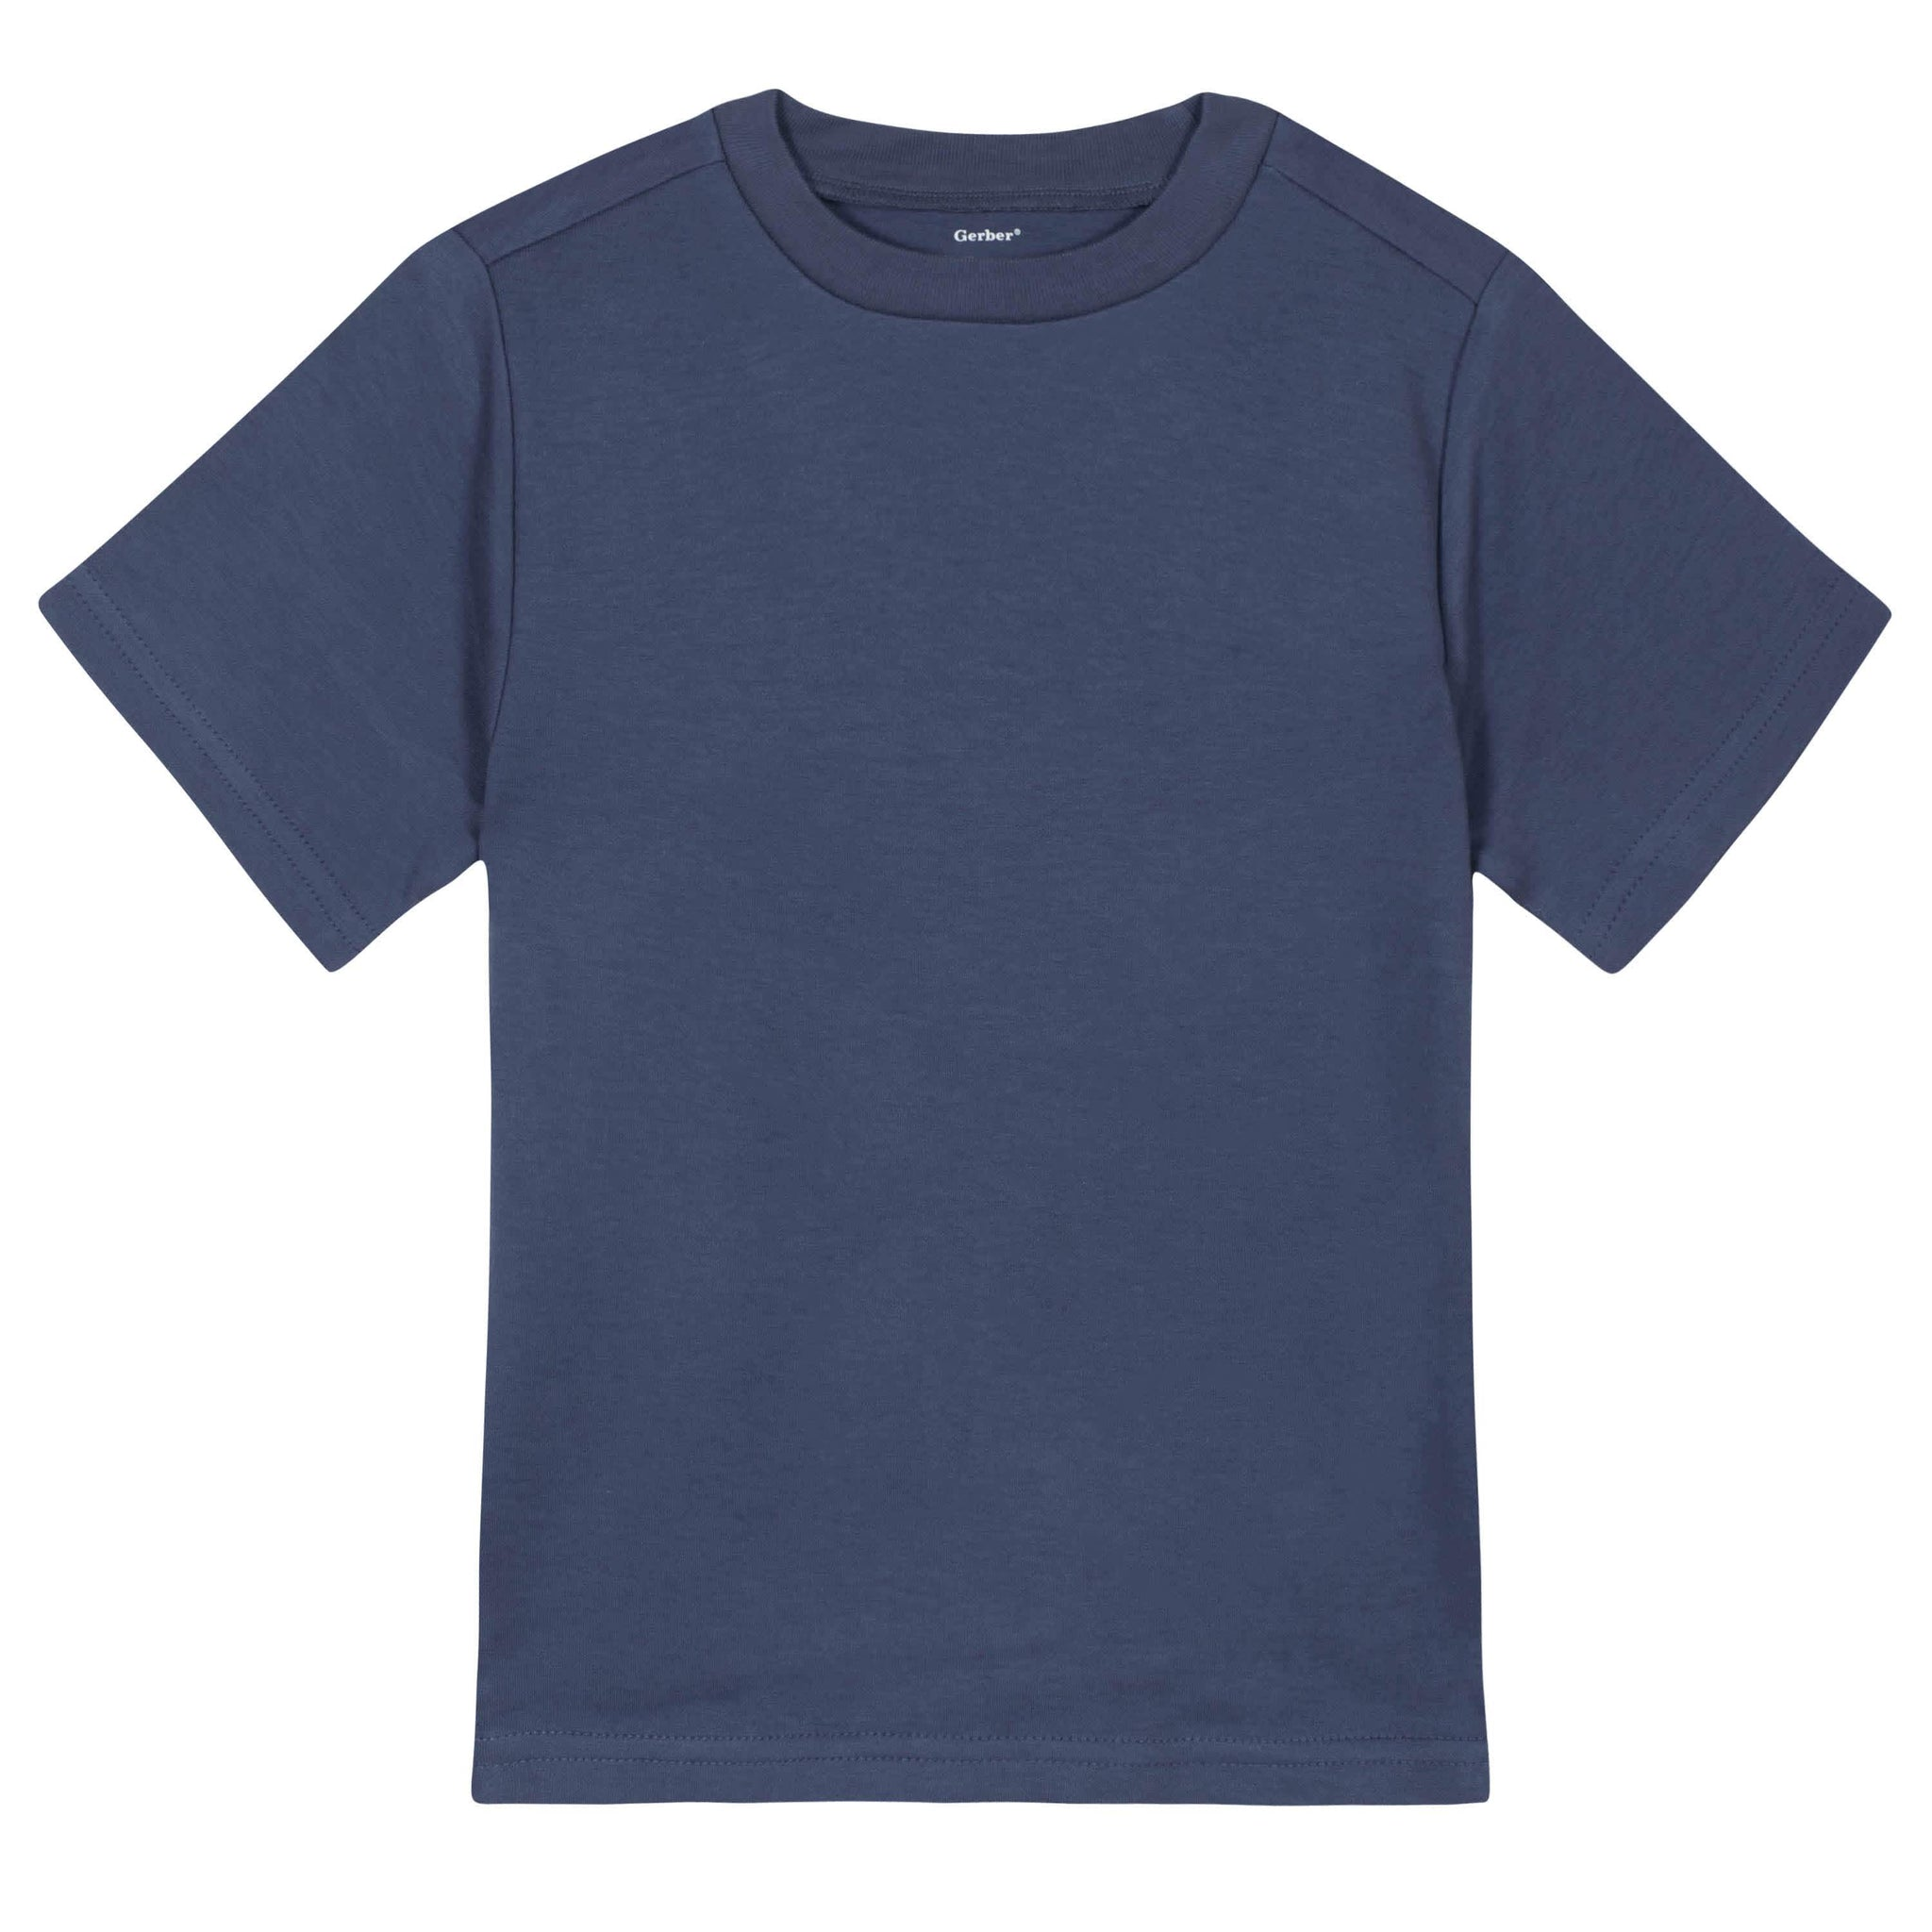 Gerber® Premium Navy Short Sleeve Tee Shirt - 10 Colors Available